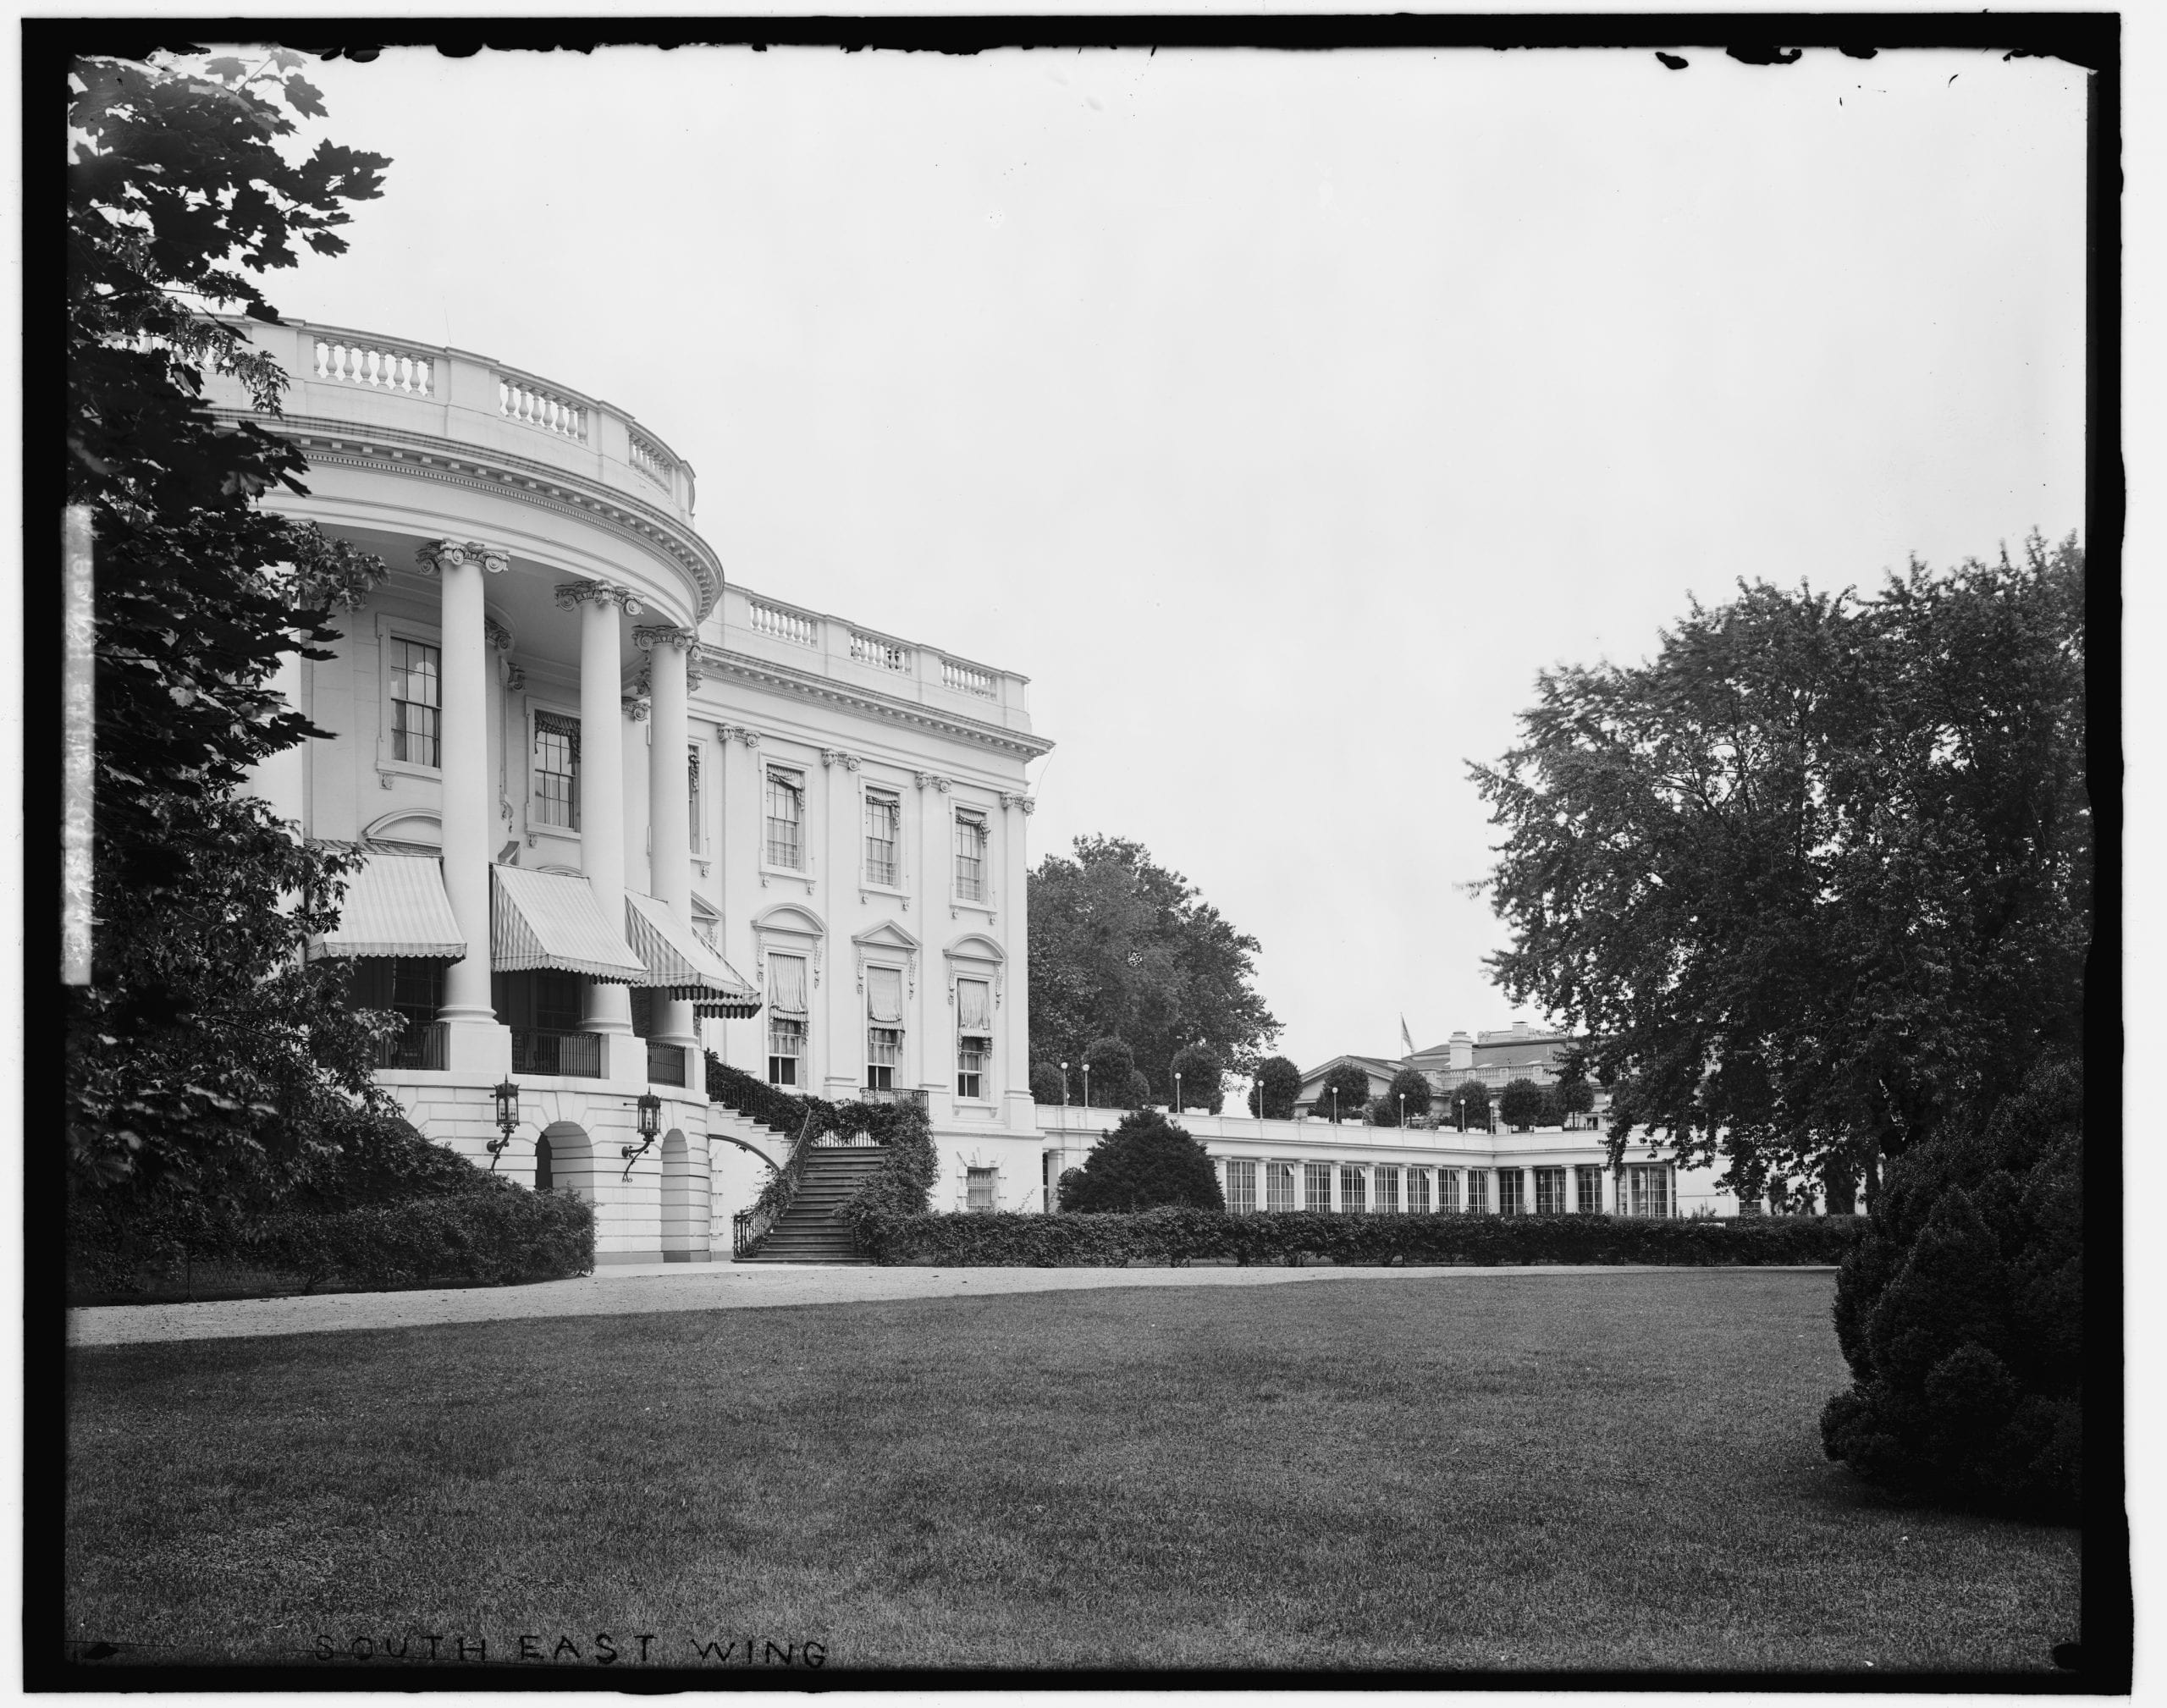 View of the White House's East Wing